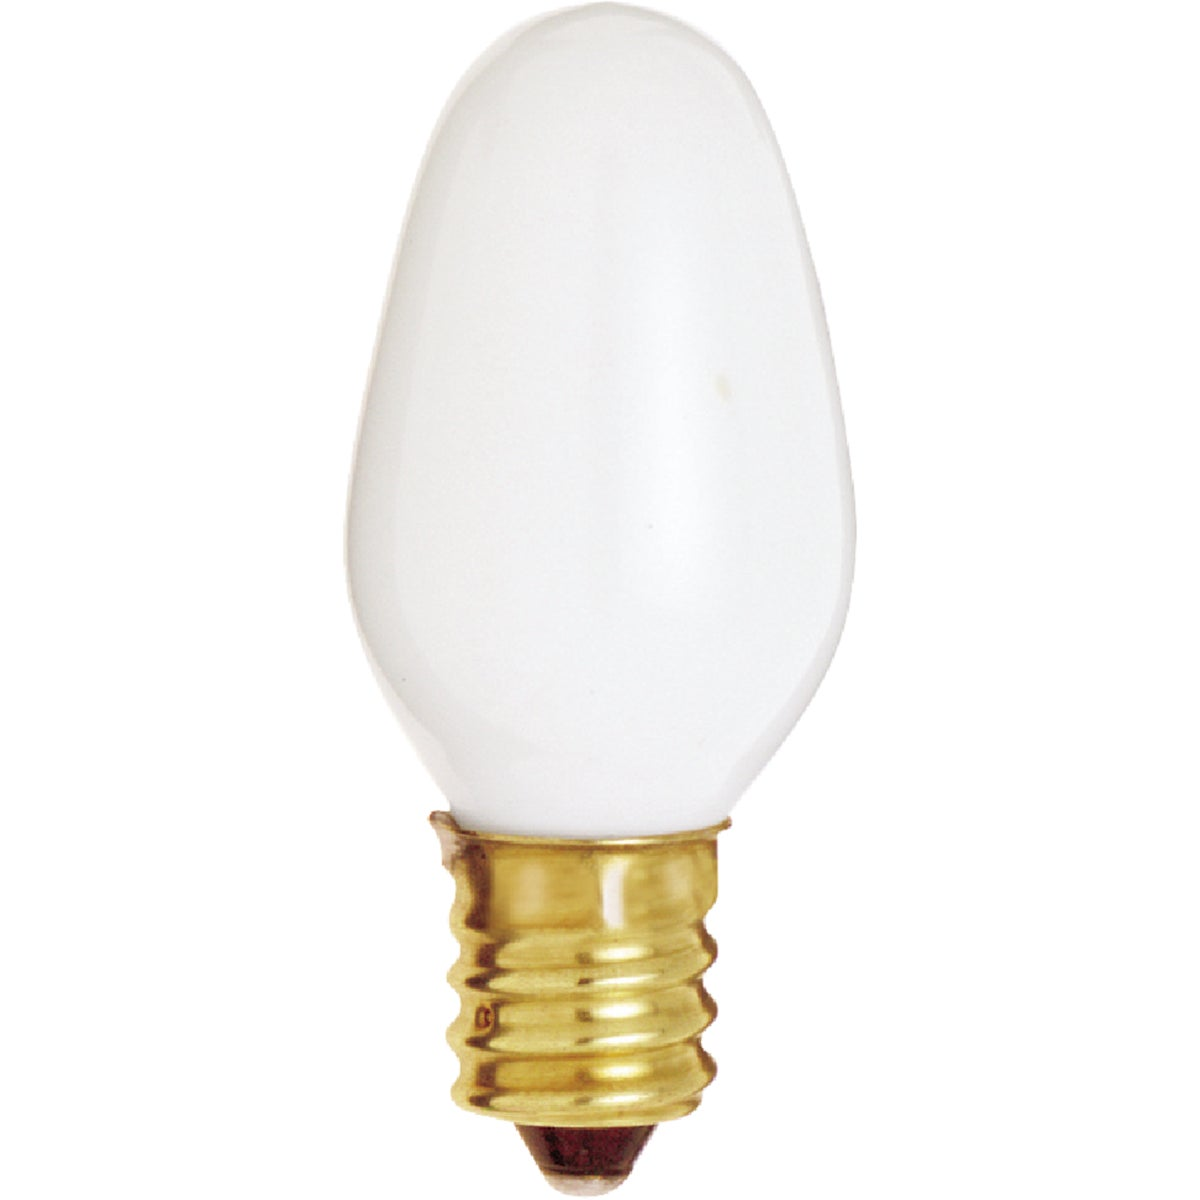 4W WHT NIGHT LIGHT BULB - 16001 by G E Lighting